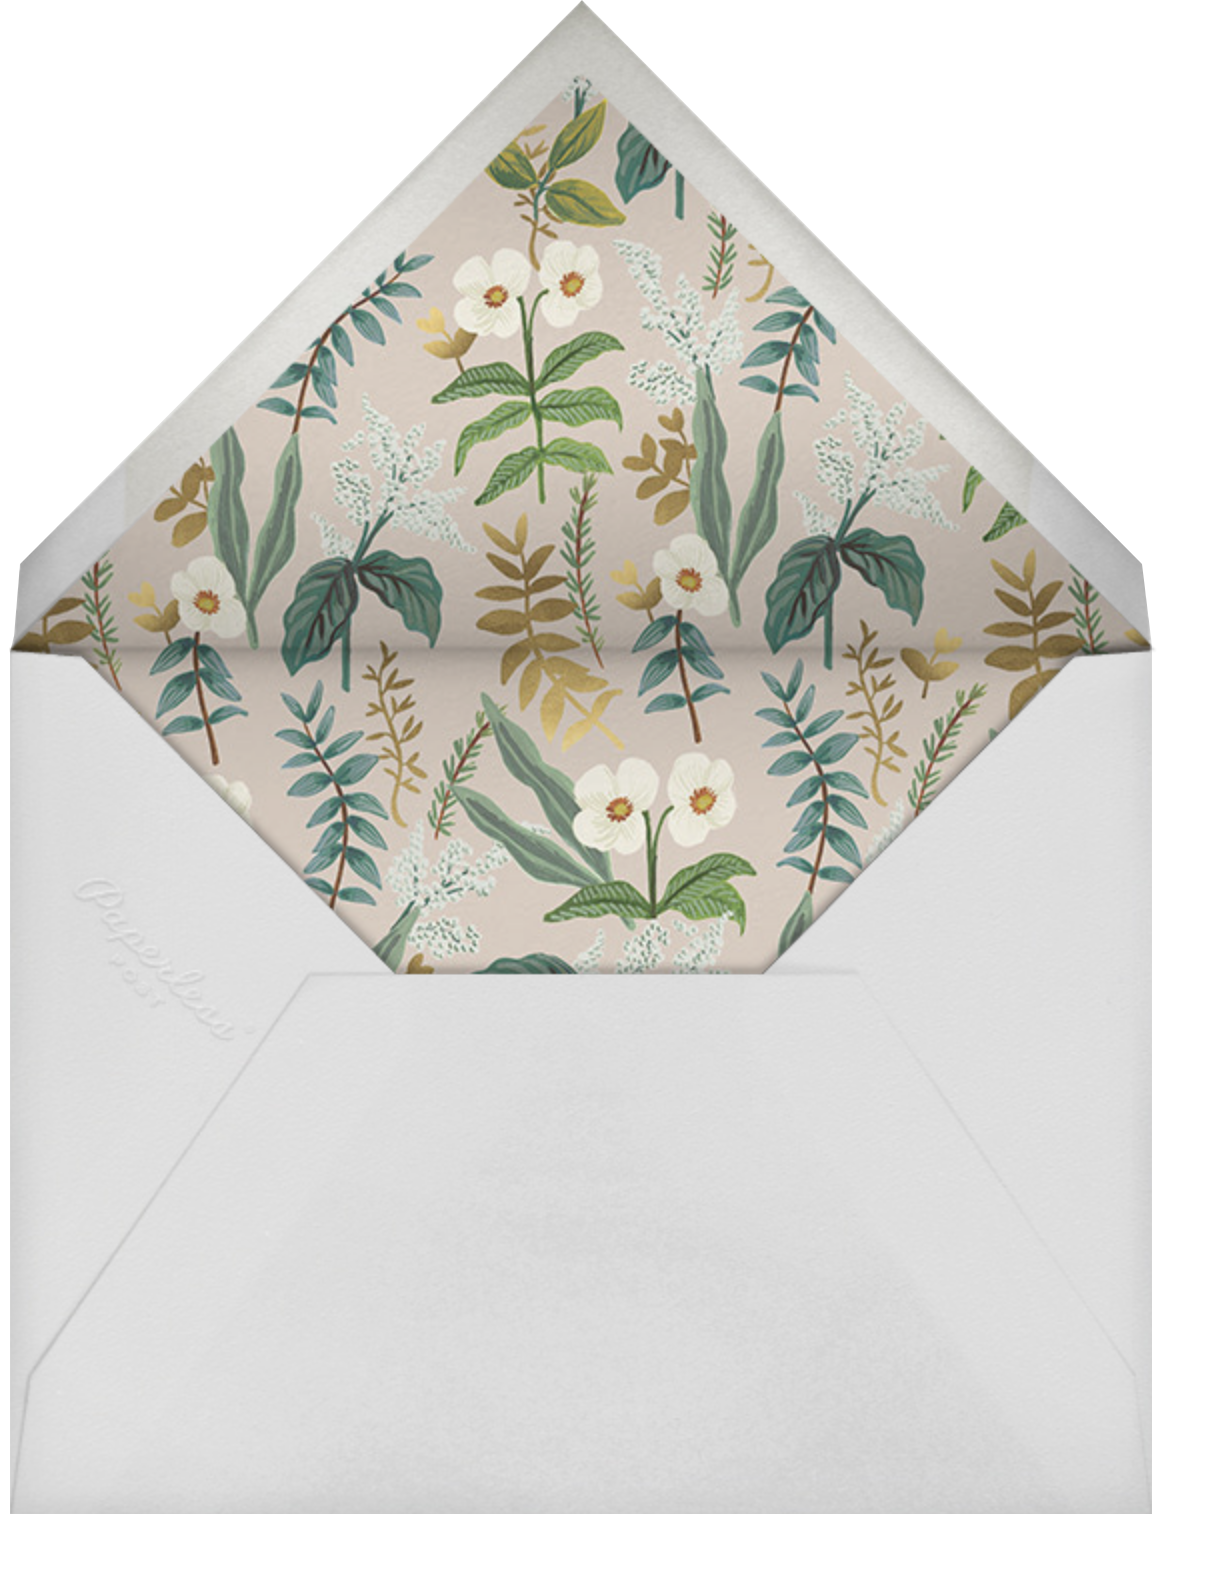 Meadow Garland Photo - Rifle Paper Co. - Virtual parties - envelope back